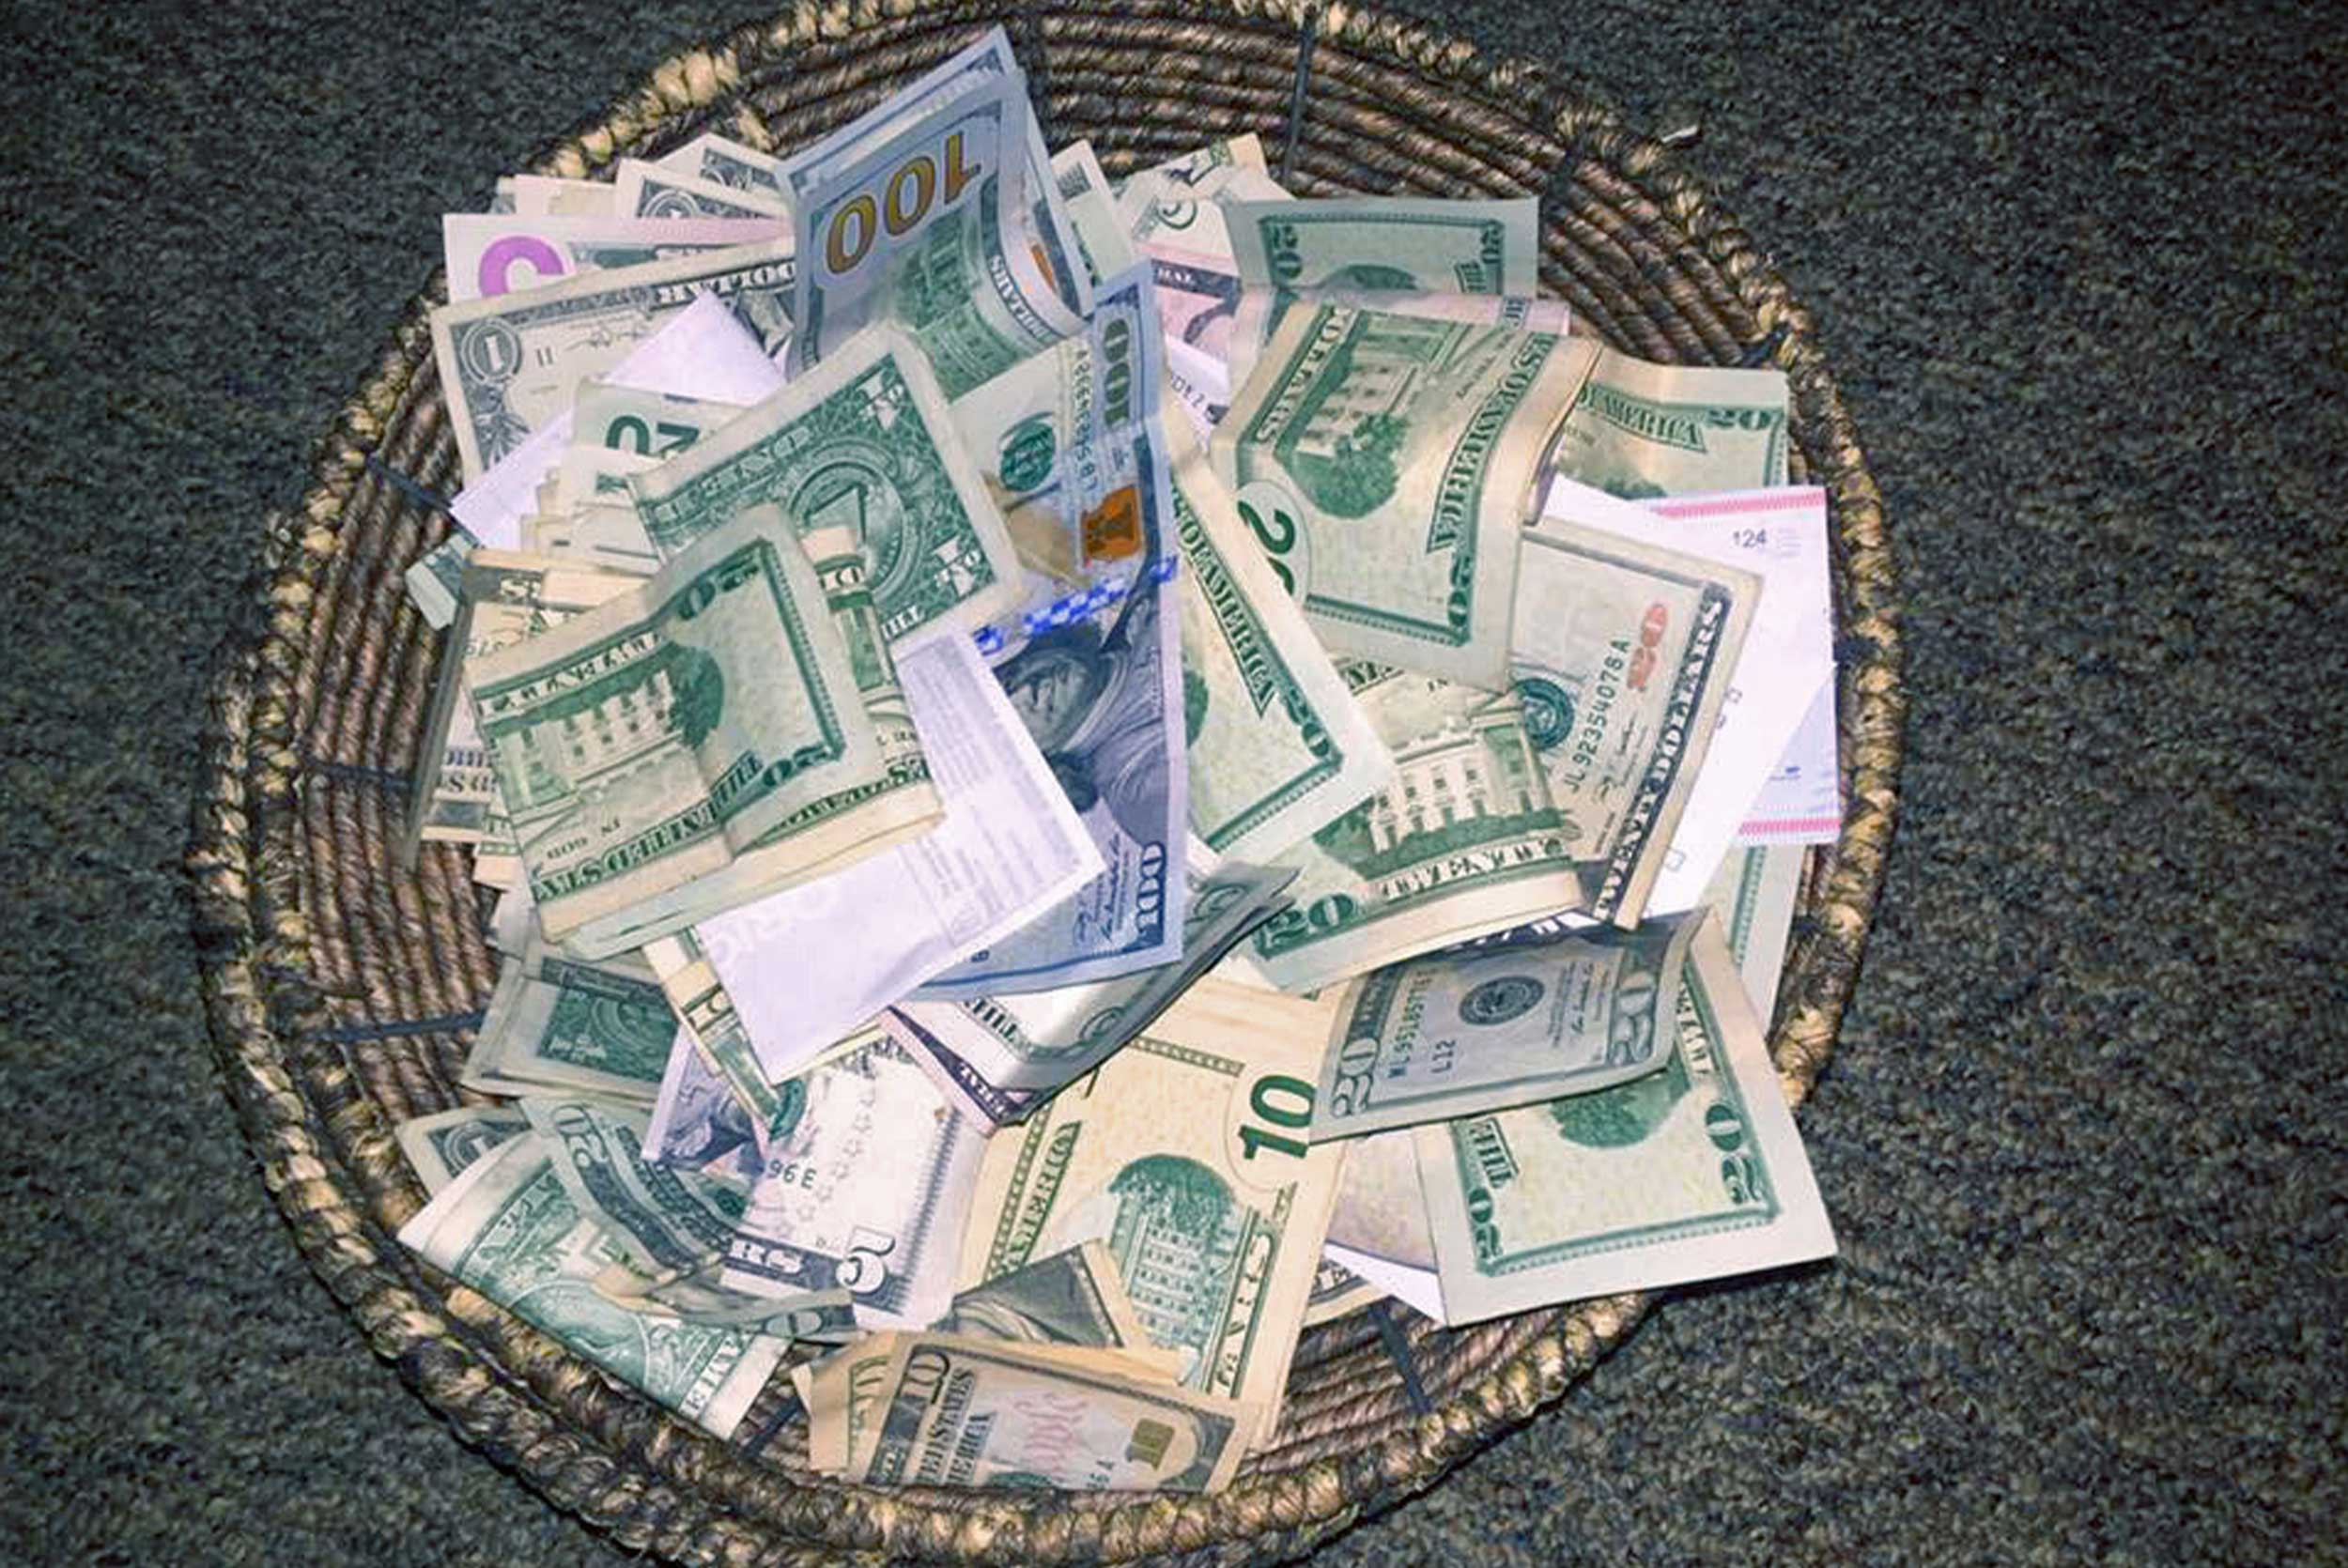 Give - I will give of my resources generously, beginning with a tithe, in partnership with the mission of the church.